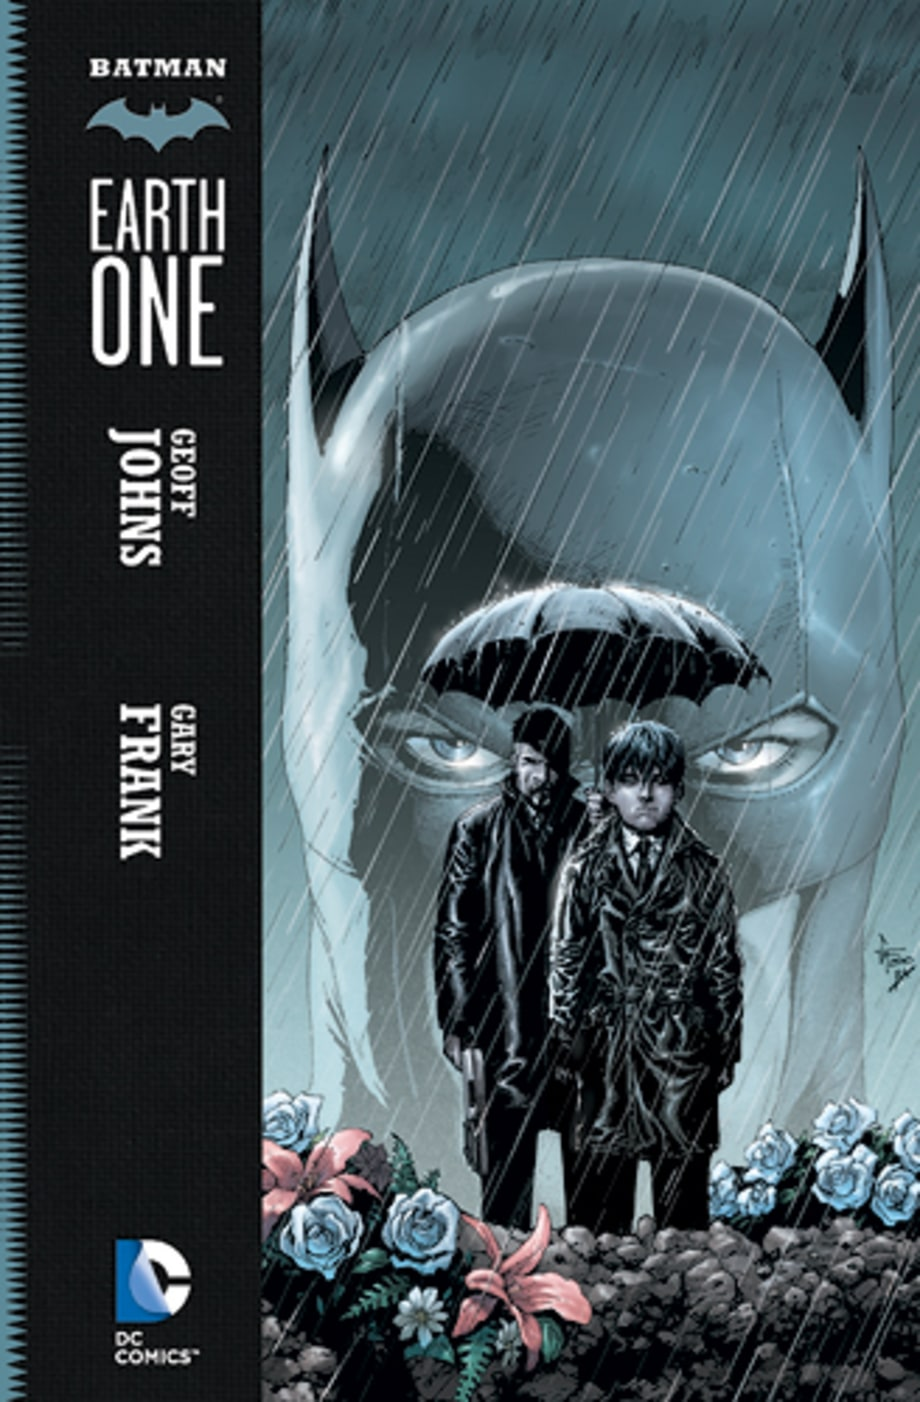 14. 'Batman: Earth One'